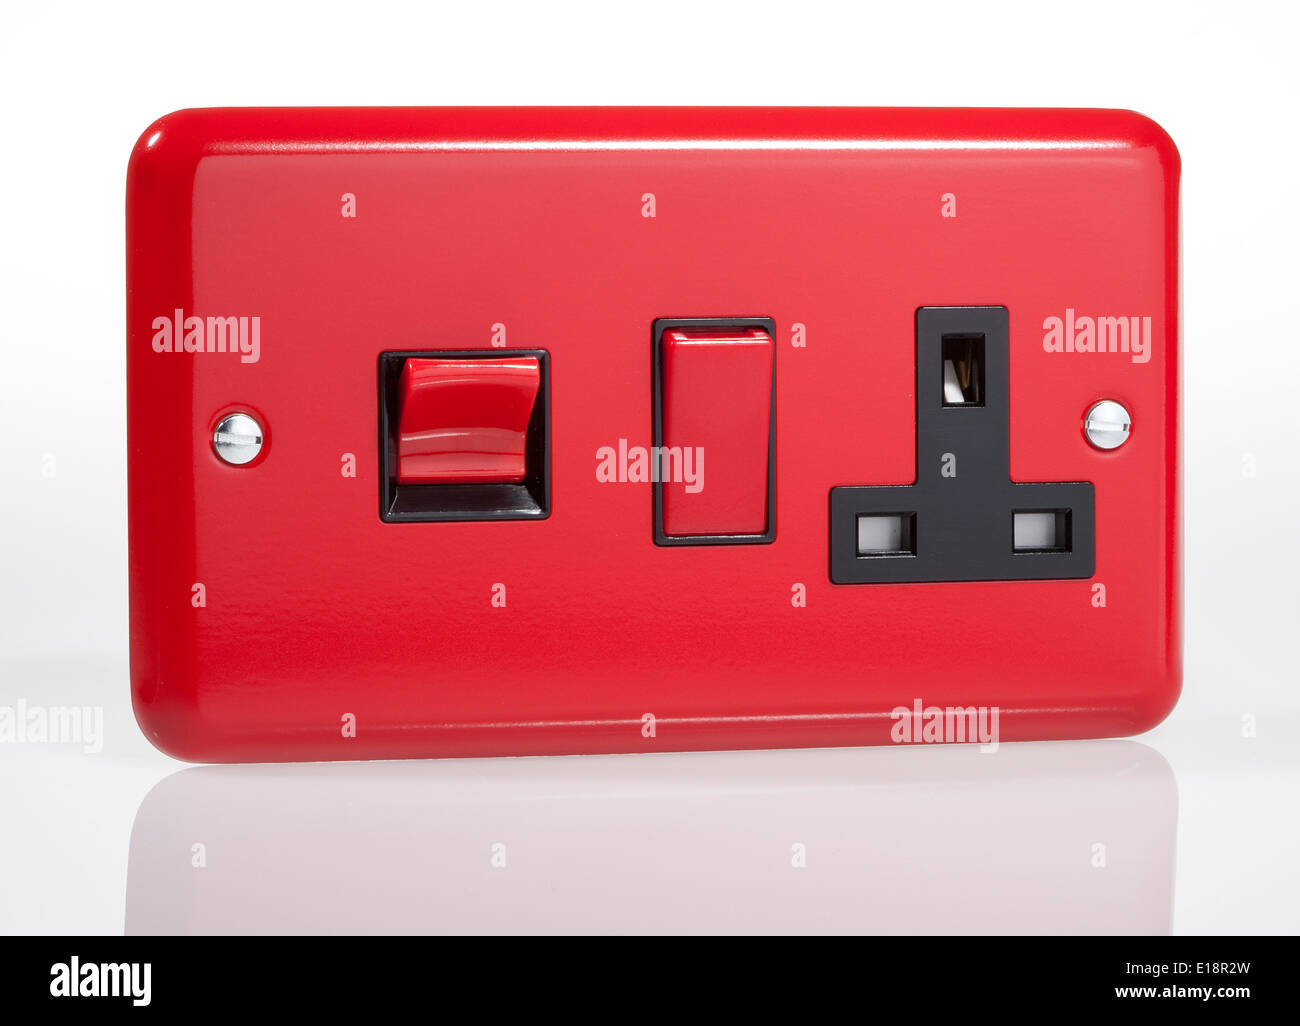 UK electrical power socket with switches Stock Photo: 69649857 - Alamy